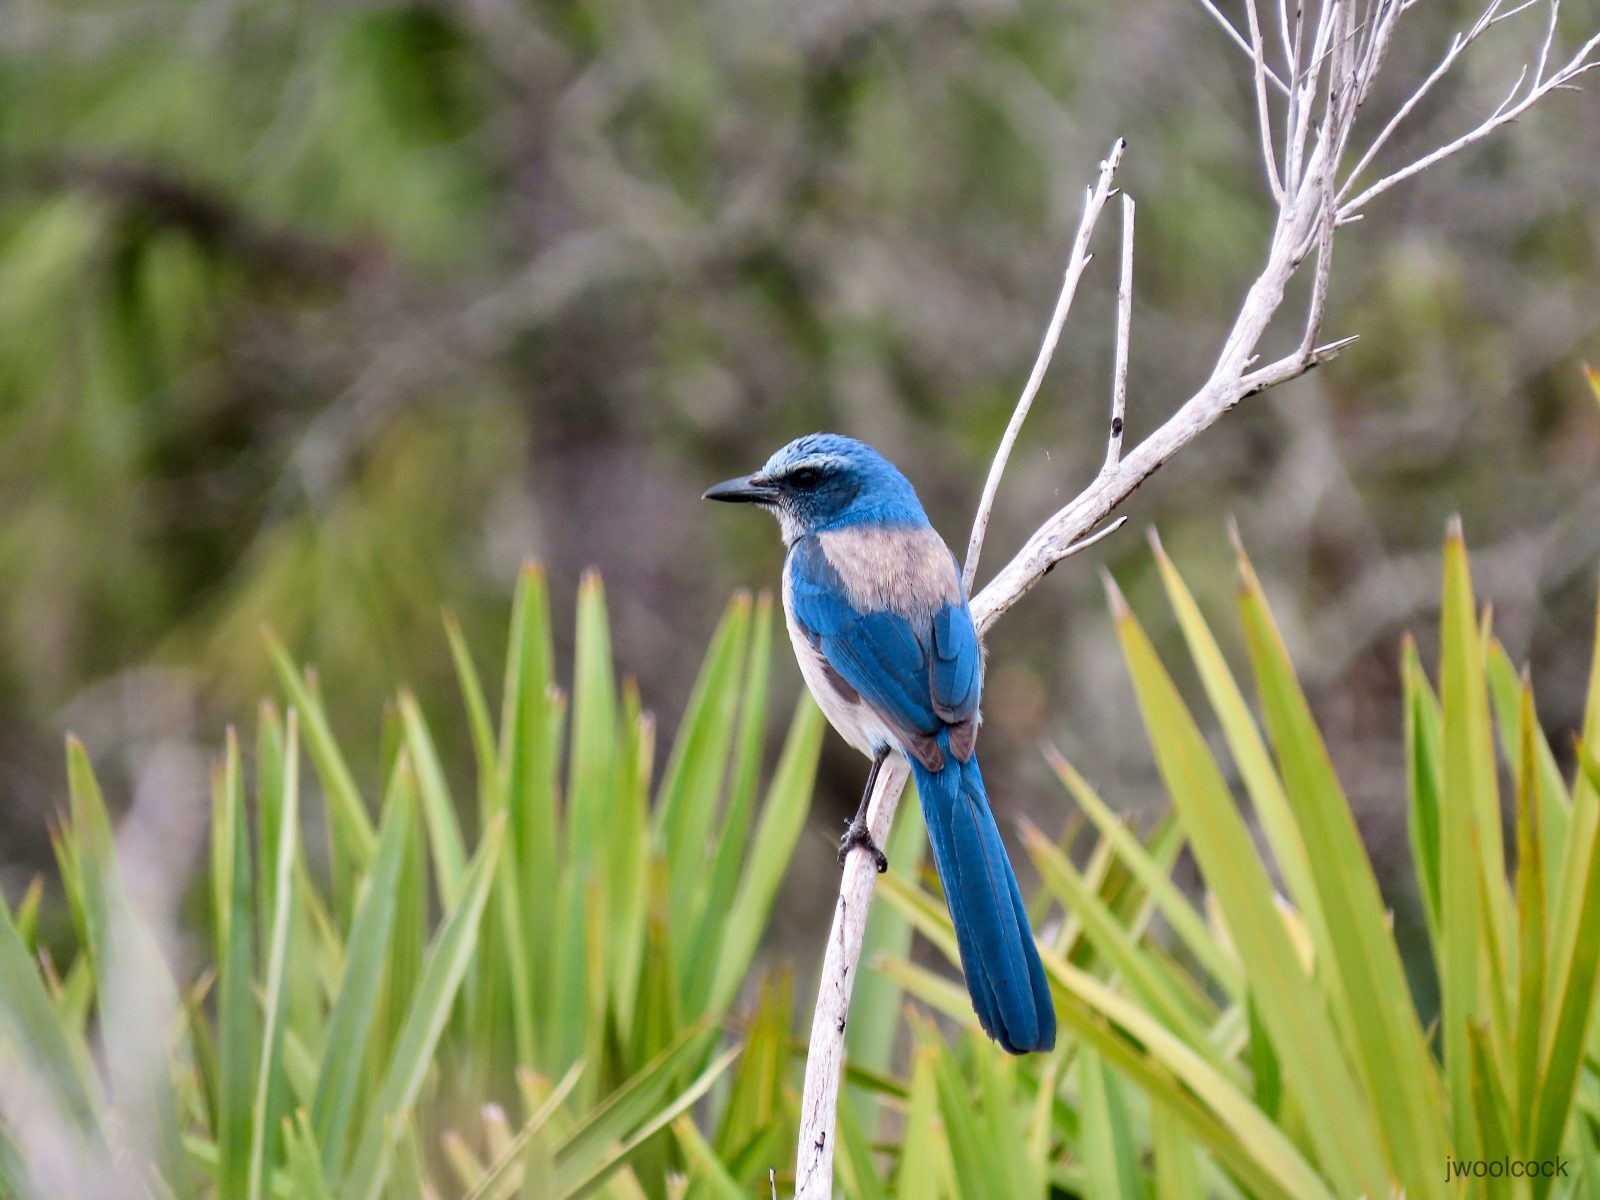 Finally, the Scrub Jay!